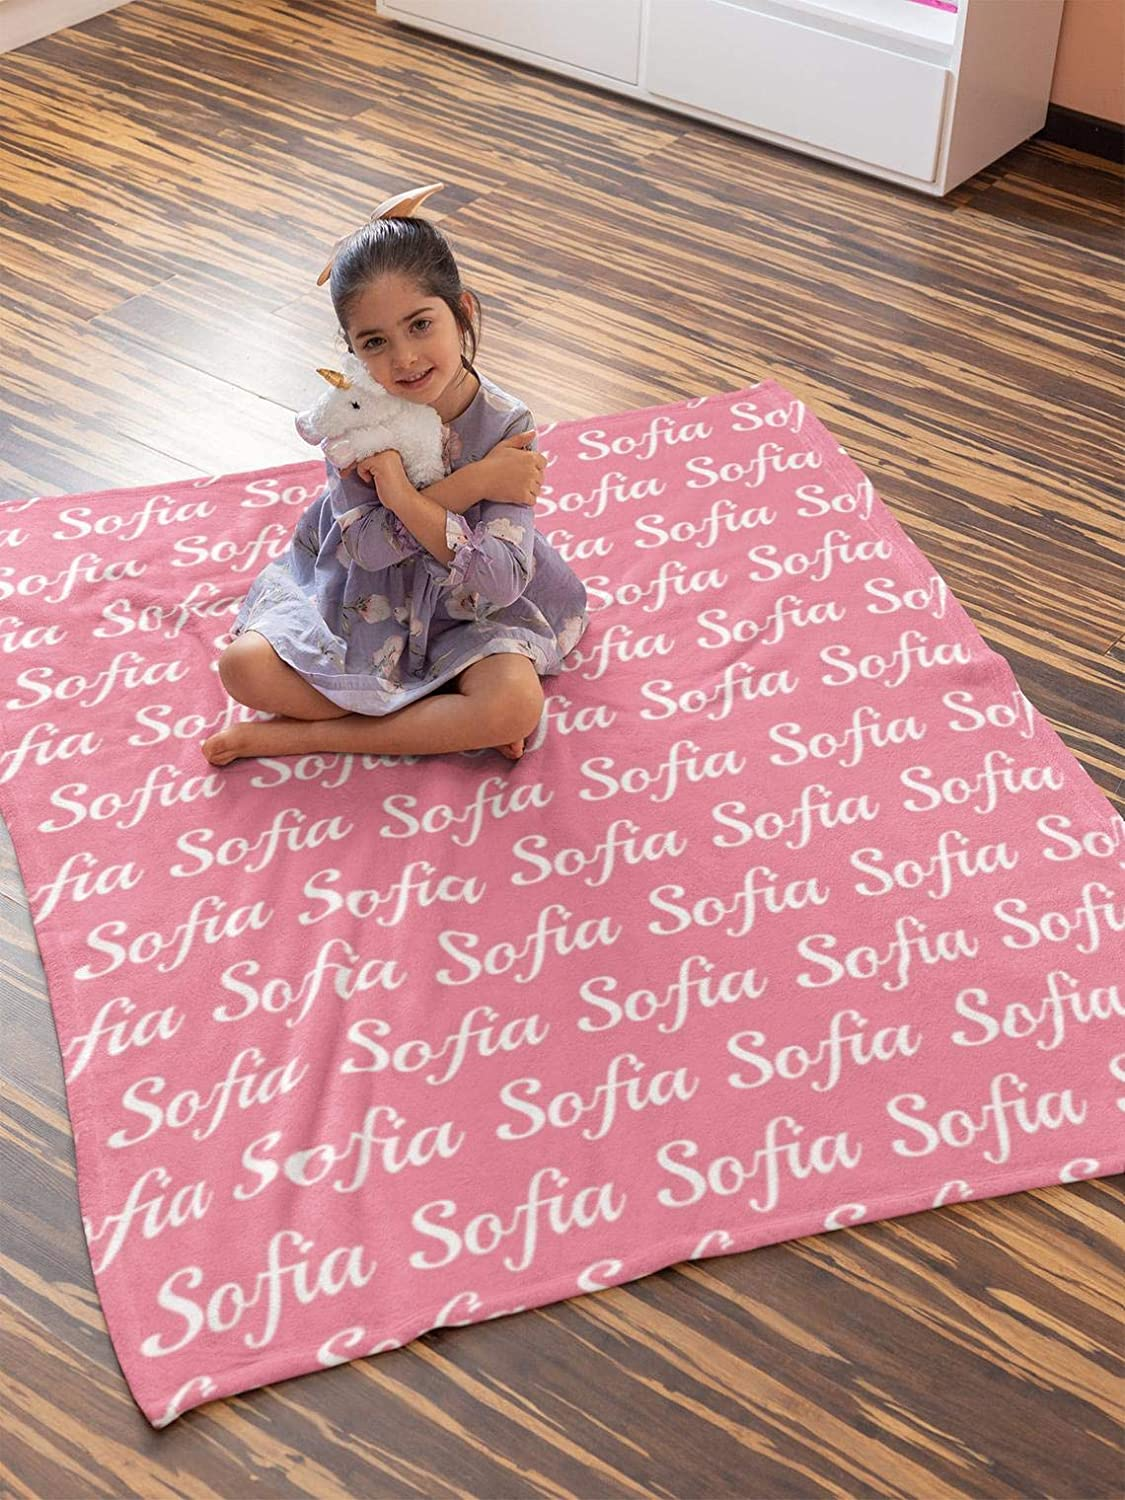 Personalized Name Blanket for Your Daughter 商舗 Custom 正規認証品 新規格 Throw Blanke